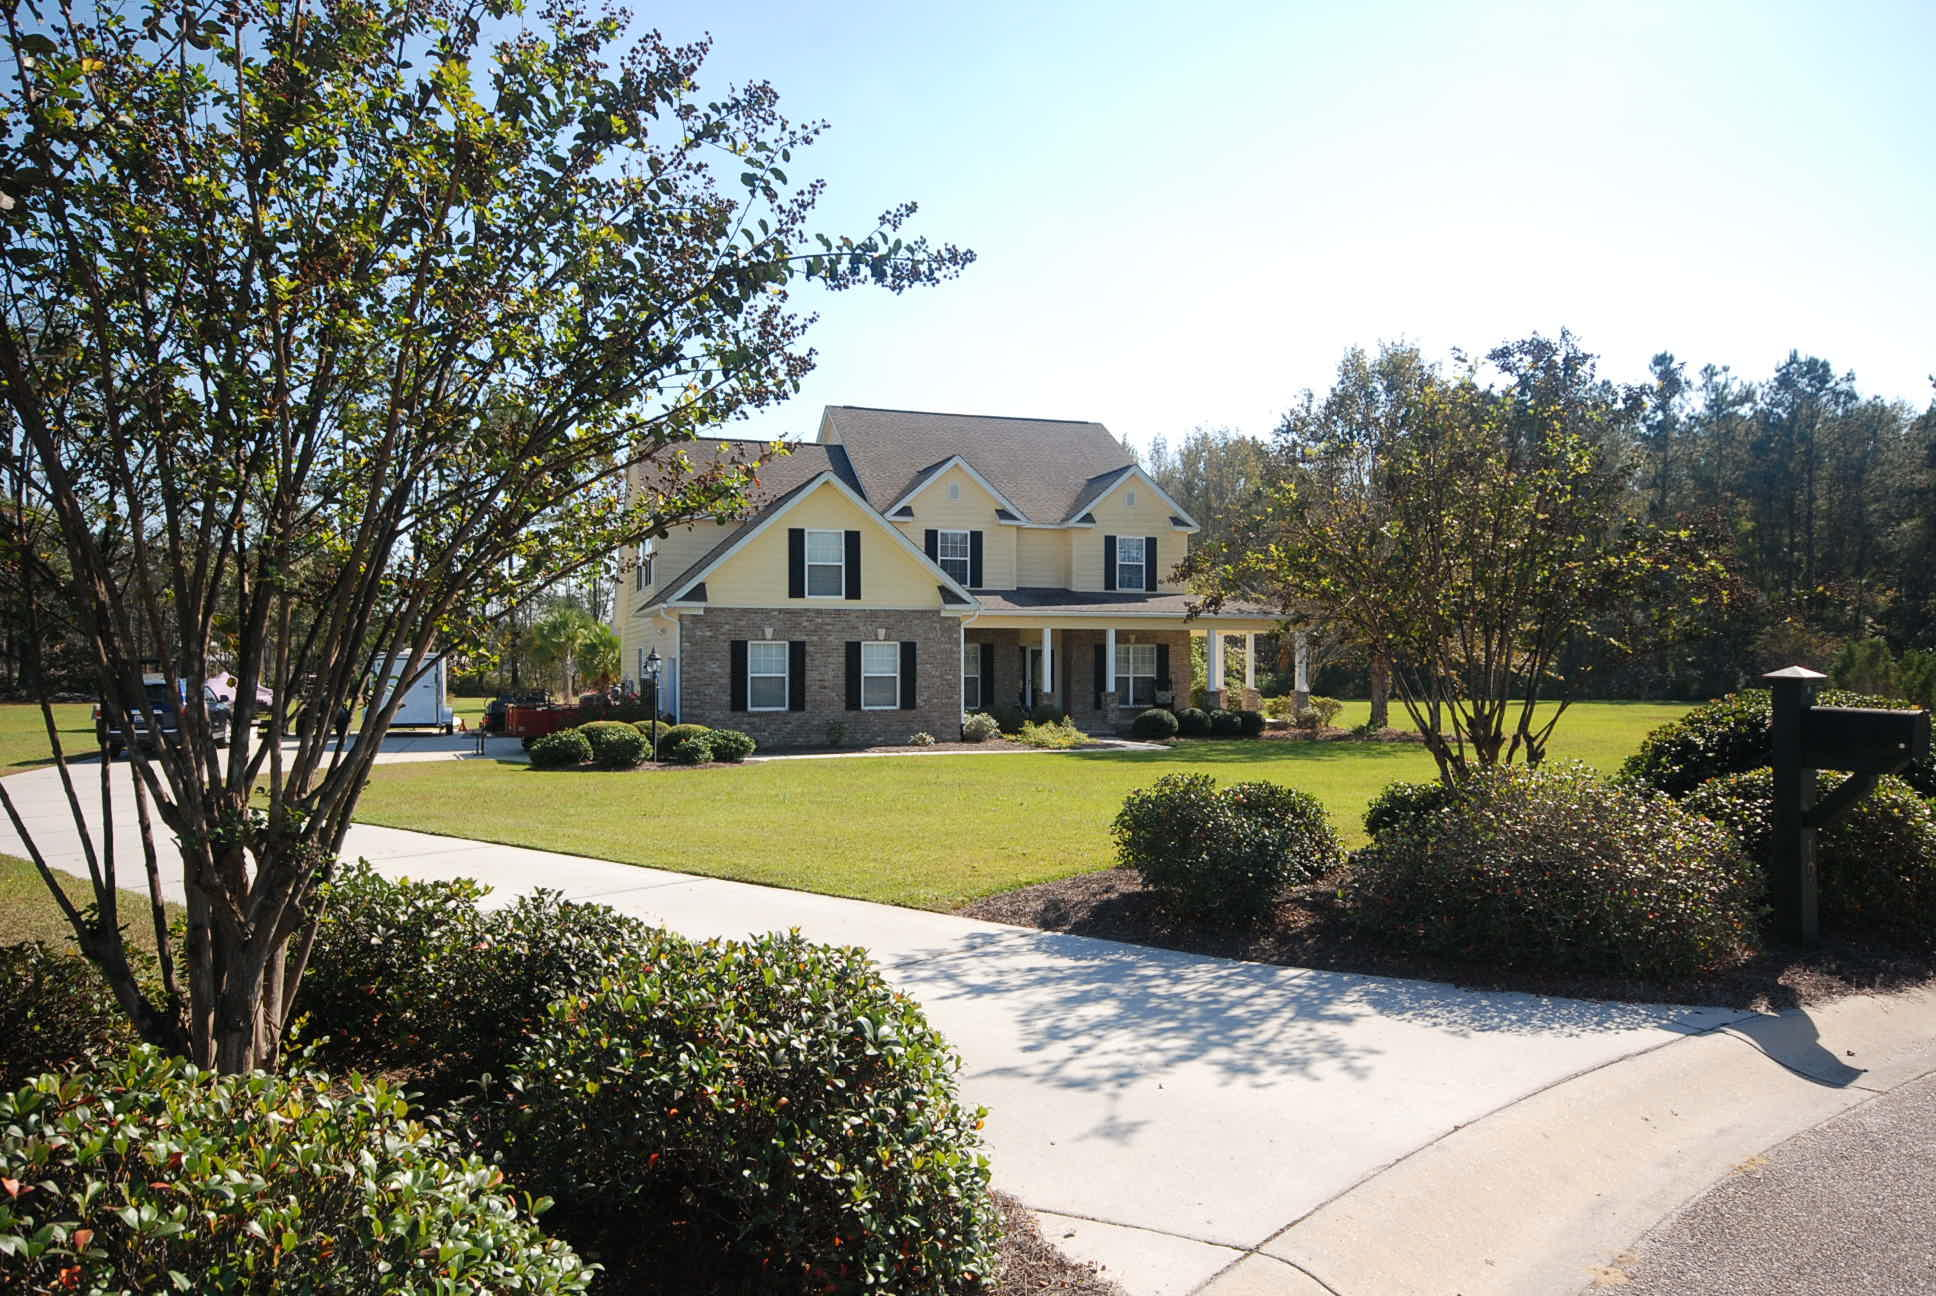 Photo of 195 Ryefield Ln, Ridgeville, SC 29472